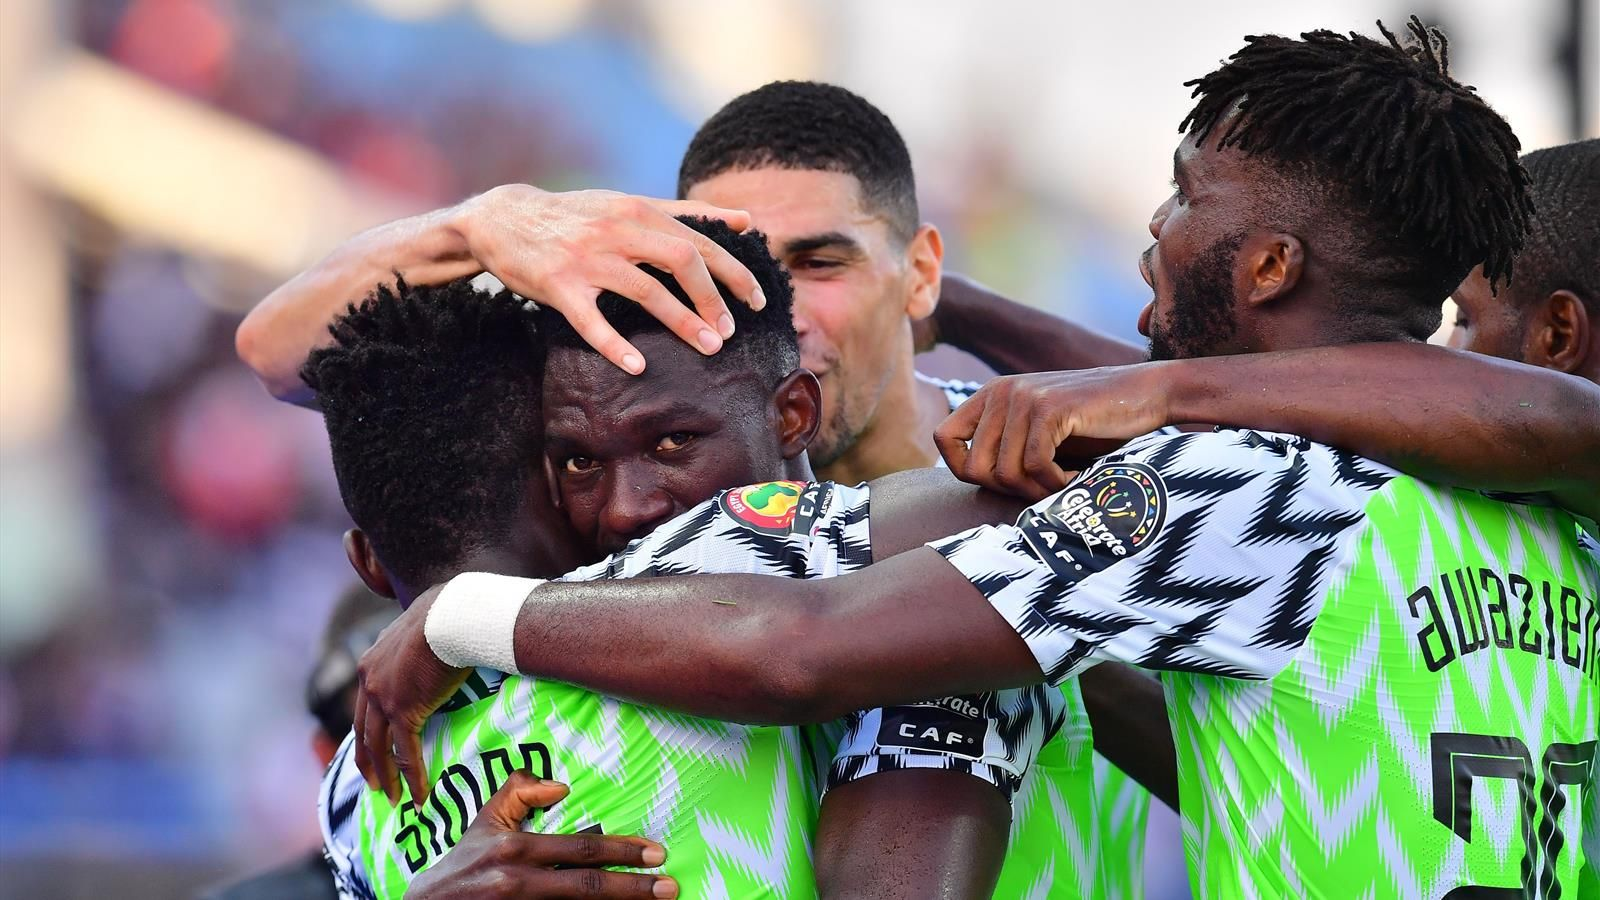 Nigeria vs Guinea [1-0 ] - Kenneth Omeruo header seals qualification